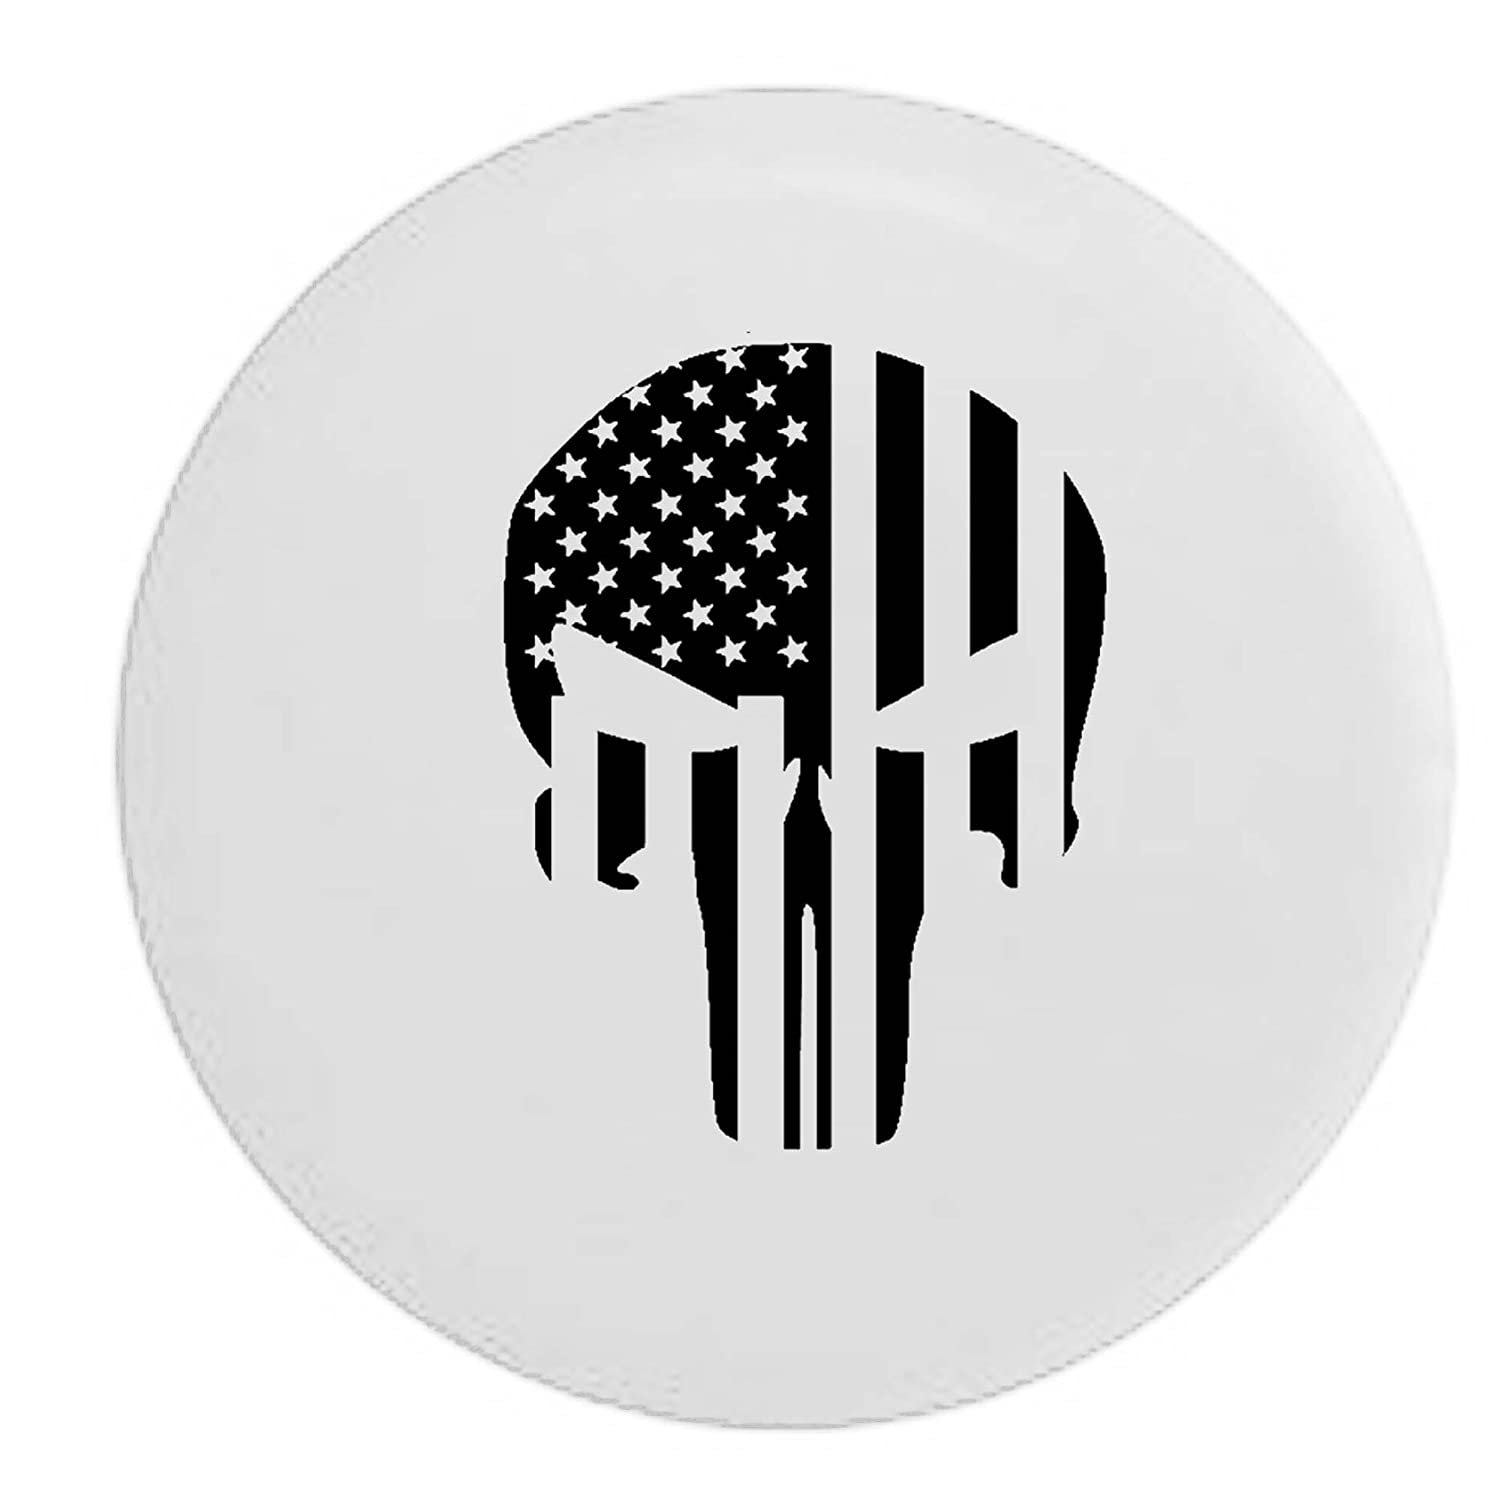 American Flag Vertical Tactical Military Punisher Skull RV Spare Tire Cover OEM Vinyl Black 30 in Pike Stealth